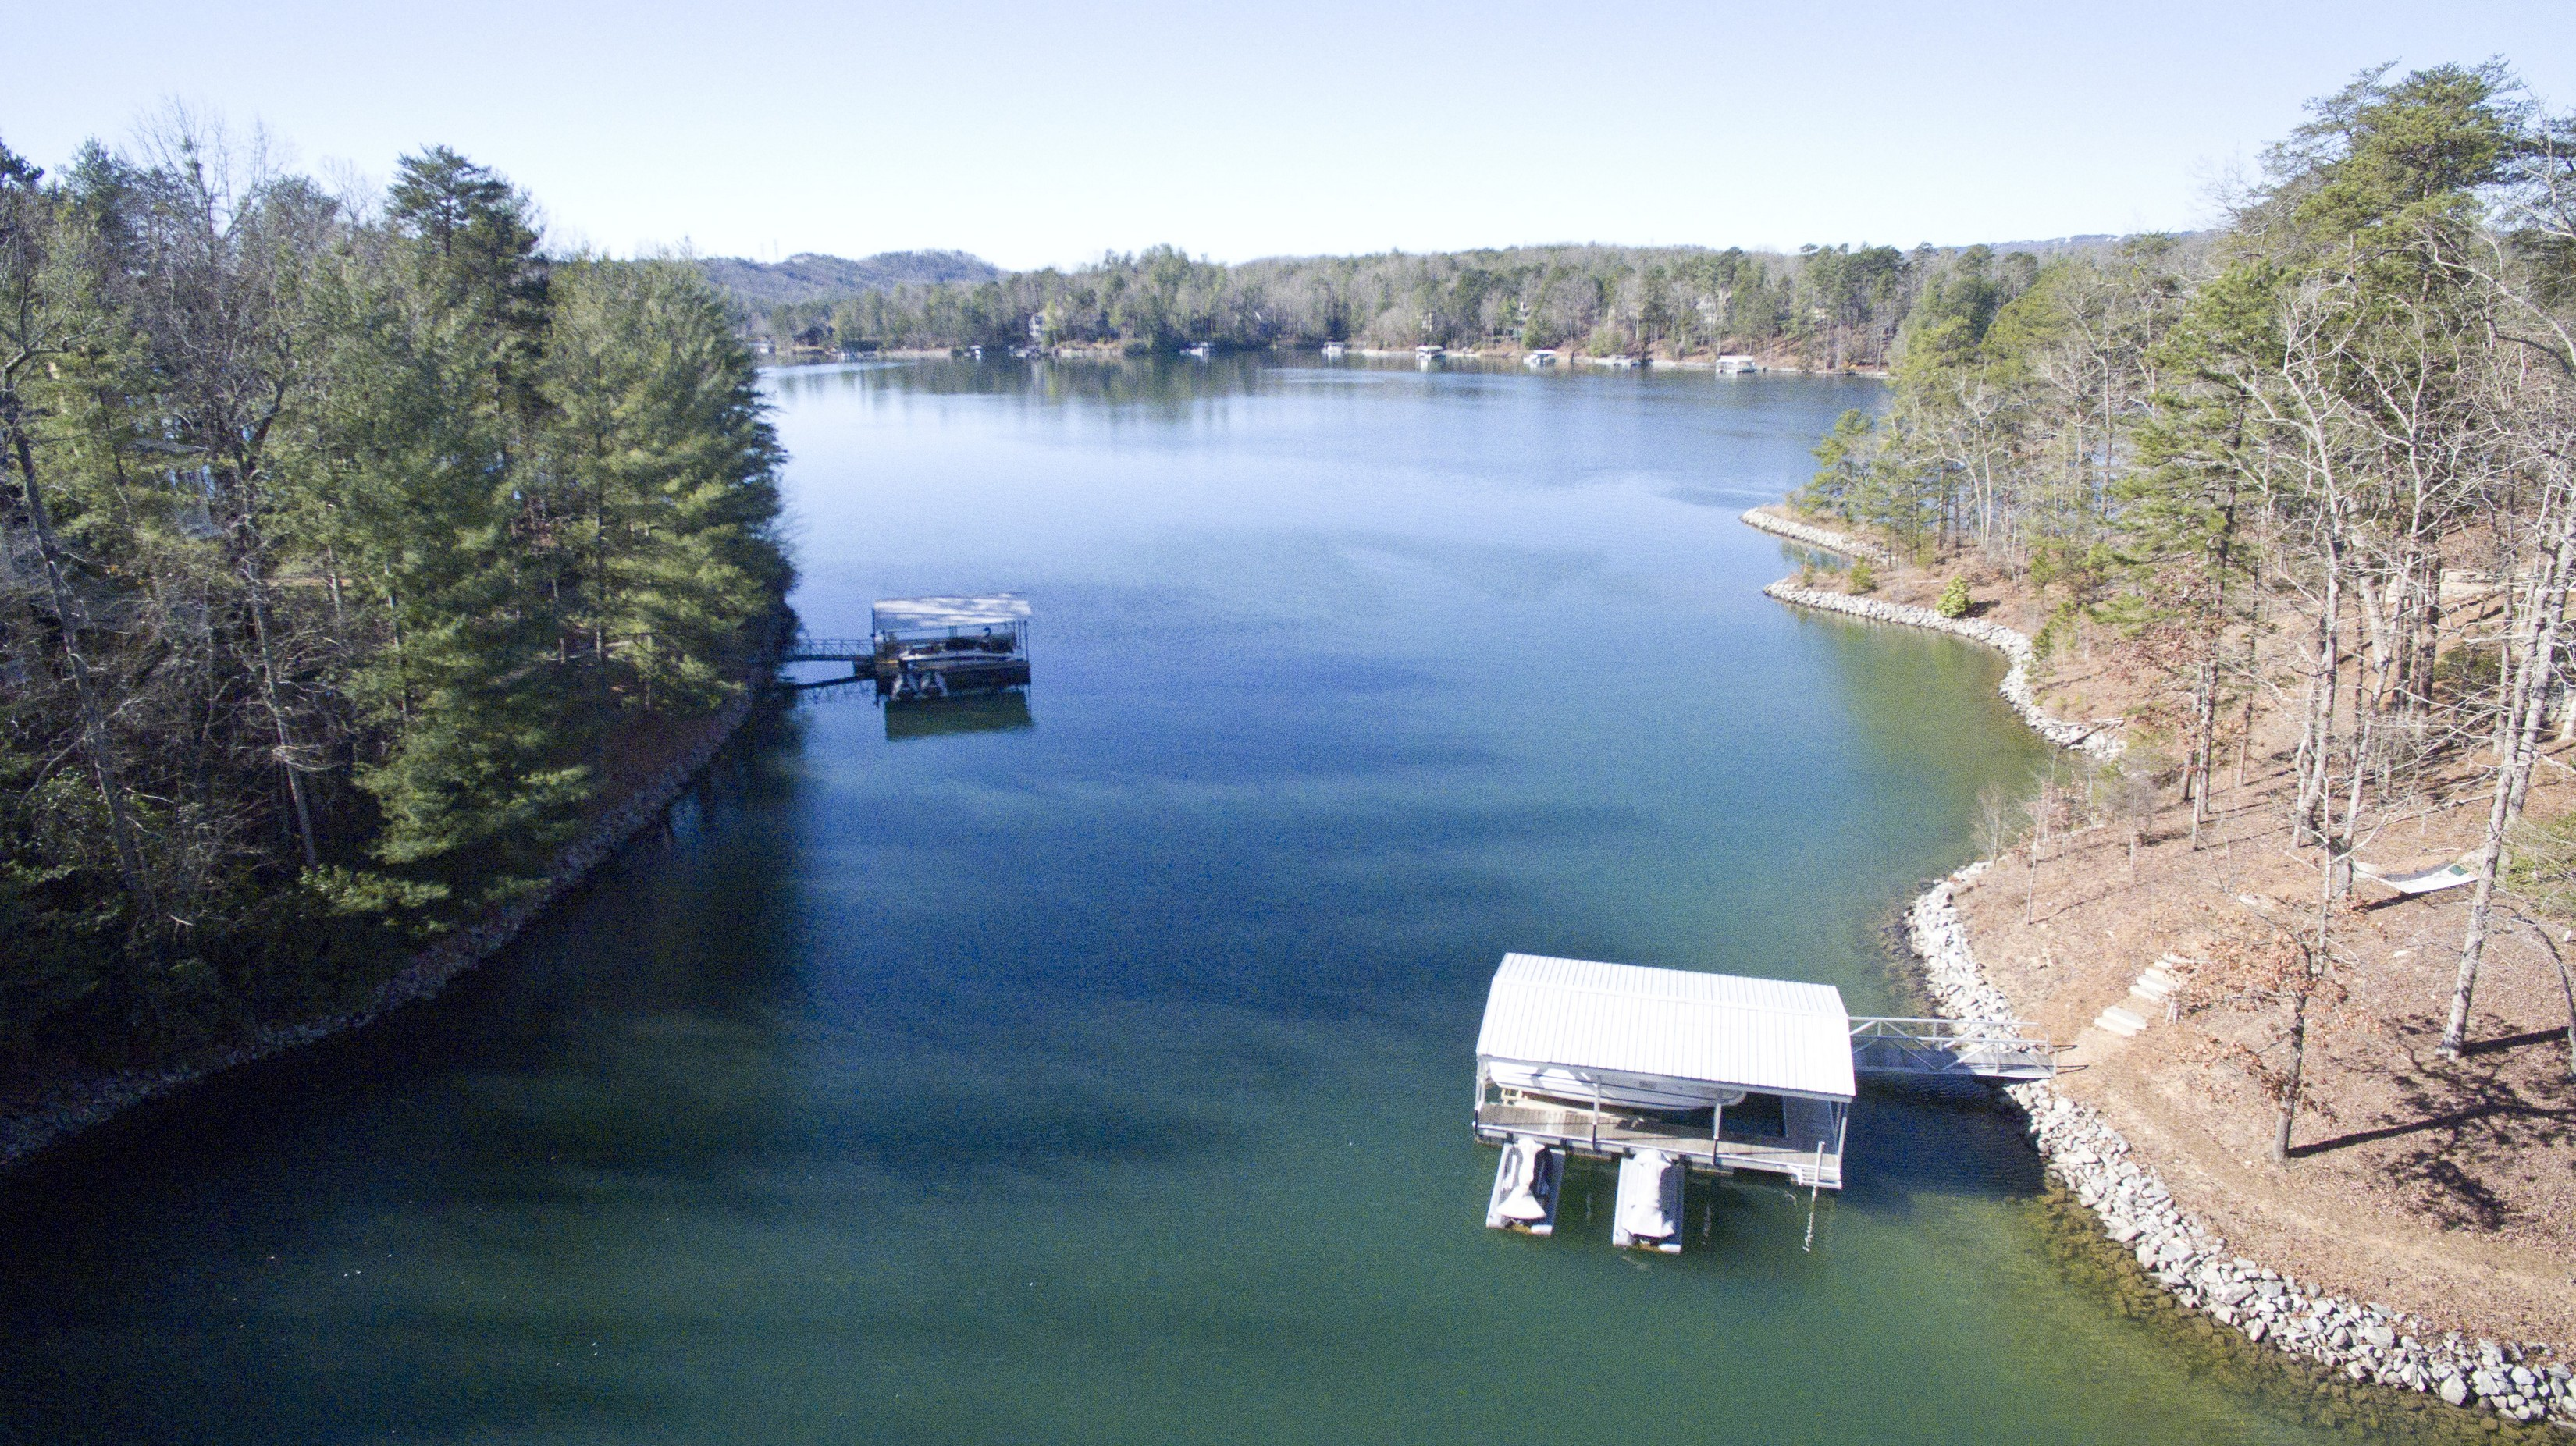 Land for Sale at Waterfront Home Site Includes Social Membership and Covered Slip Dock! S31 The Cliffs At Keowee Vineyards, Sunset, South Carolina, 29685 United States